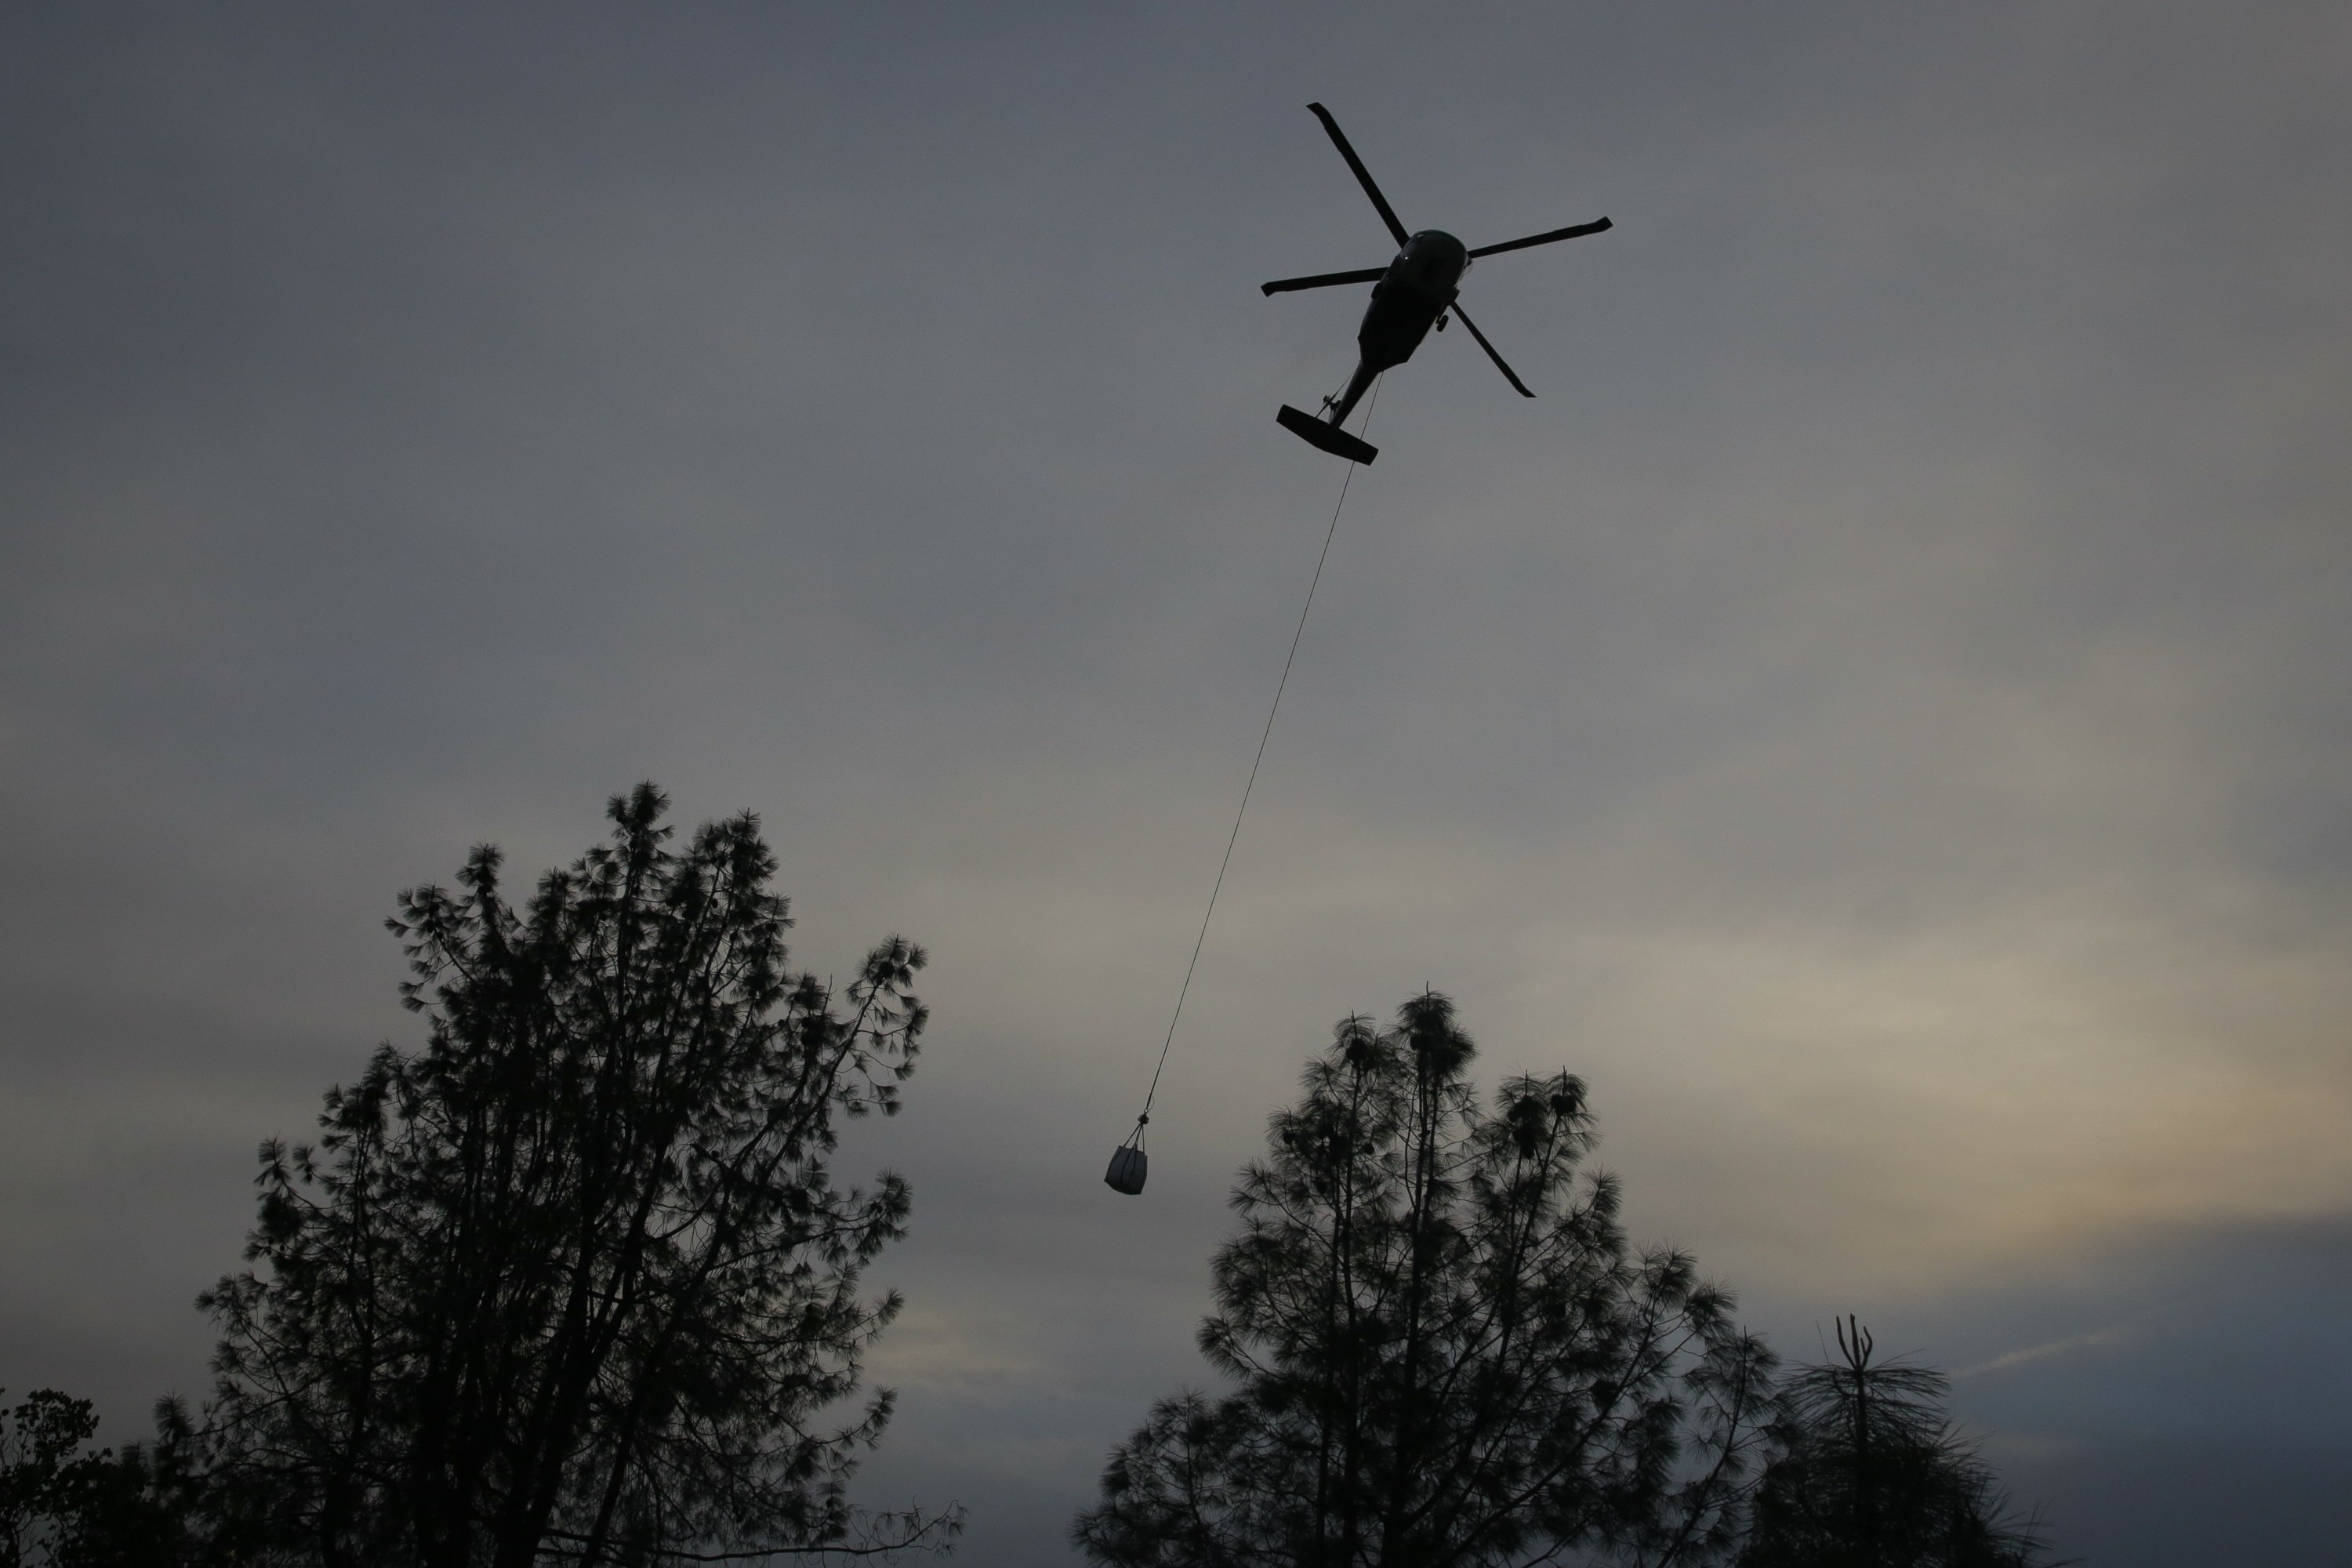 Helicopter carries large rocks to dump on main spillway of Oroville Dam.